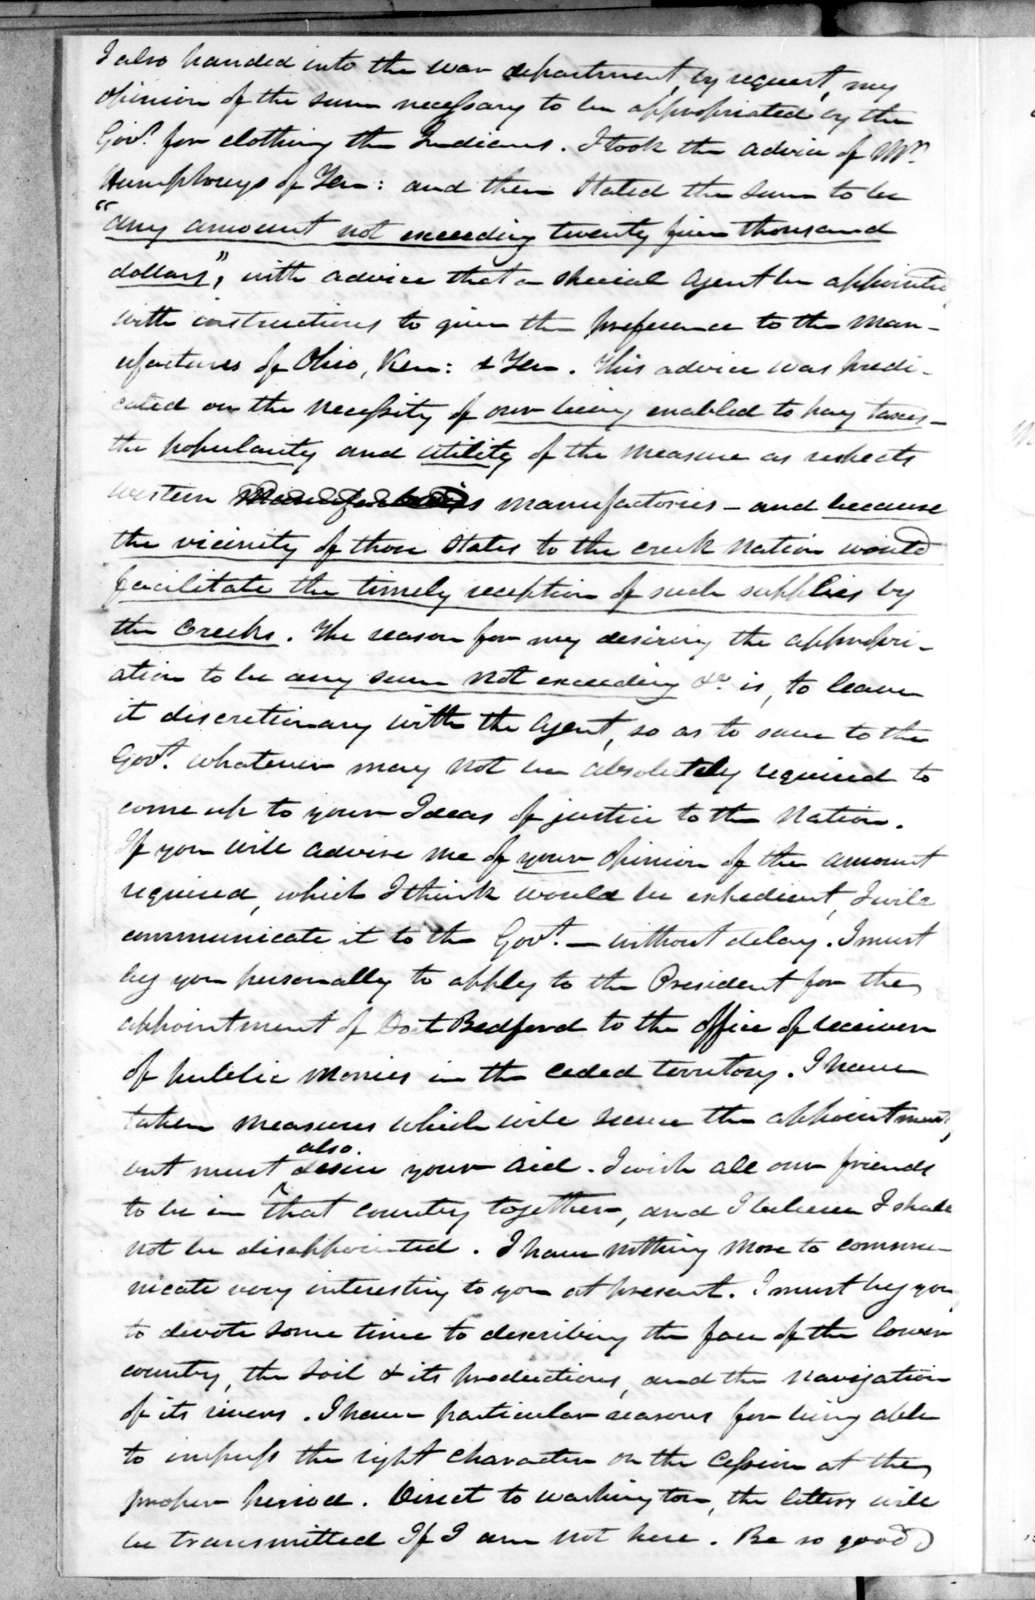 Charles Cassedy to Andrew Jackson, September 23, 1814